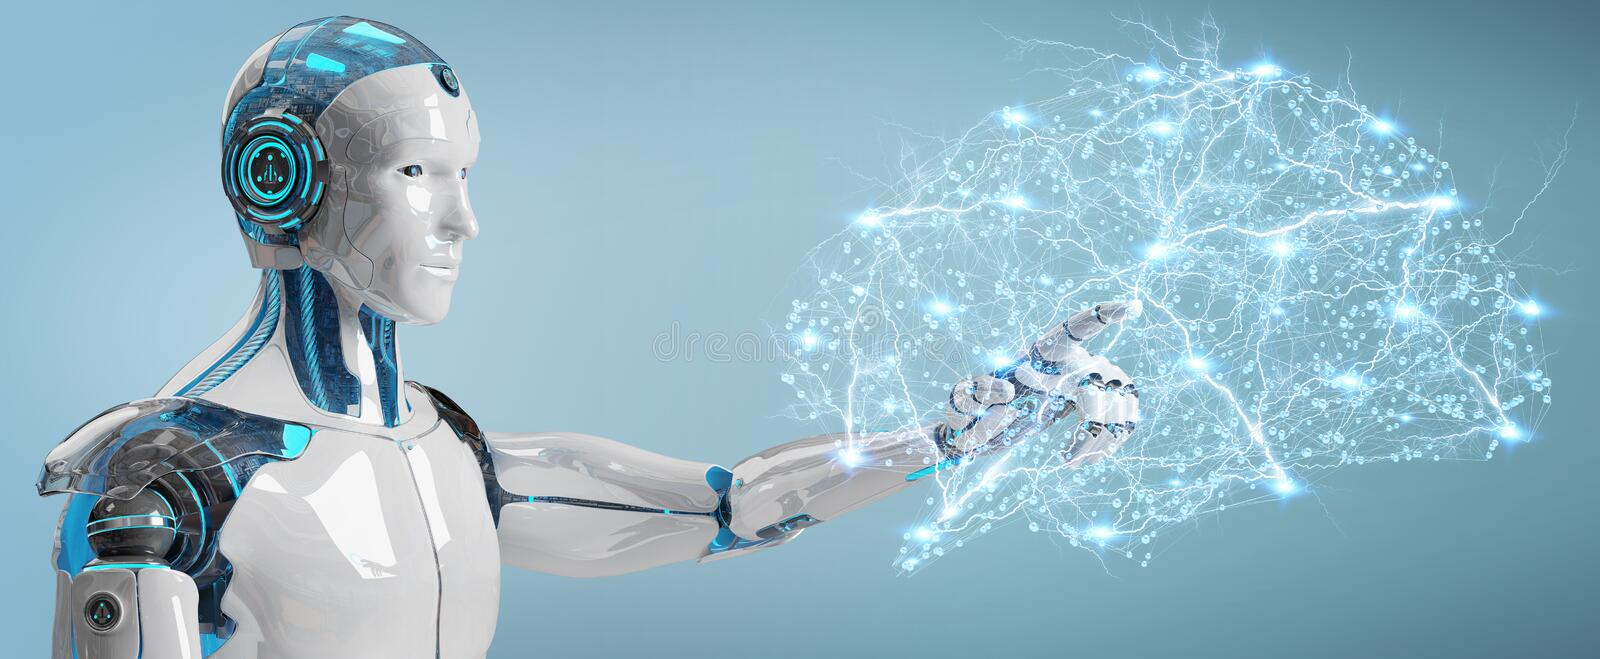 White man humanoid creating artificial intelligence 3D rendering stock illustration